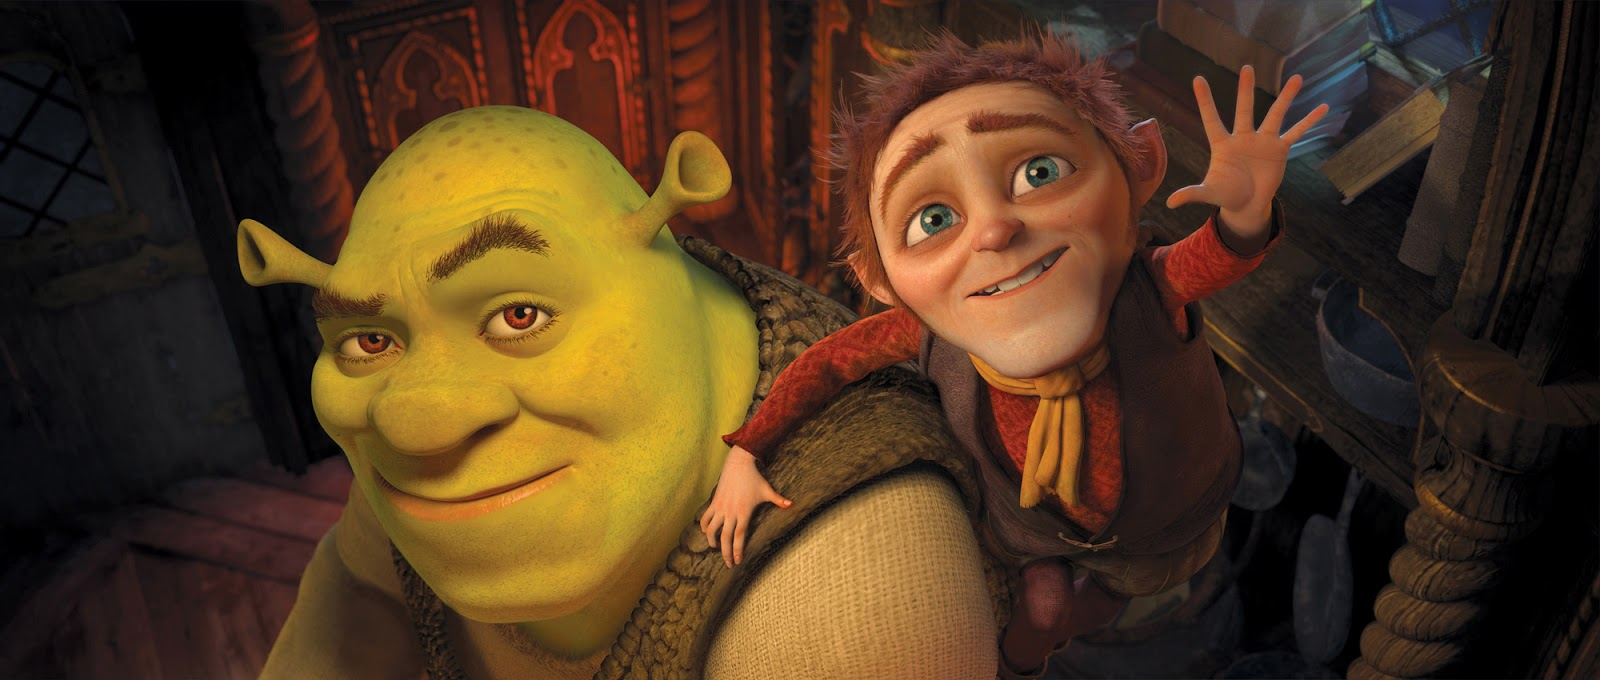 Shrek and Rumpelstiltskin